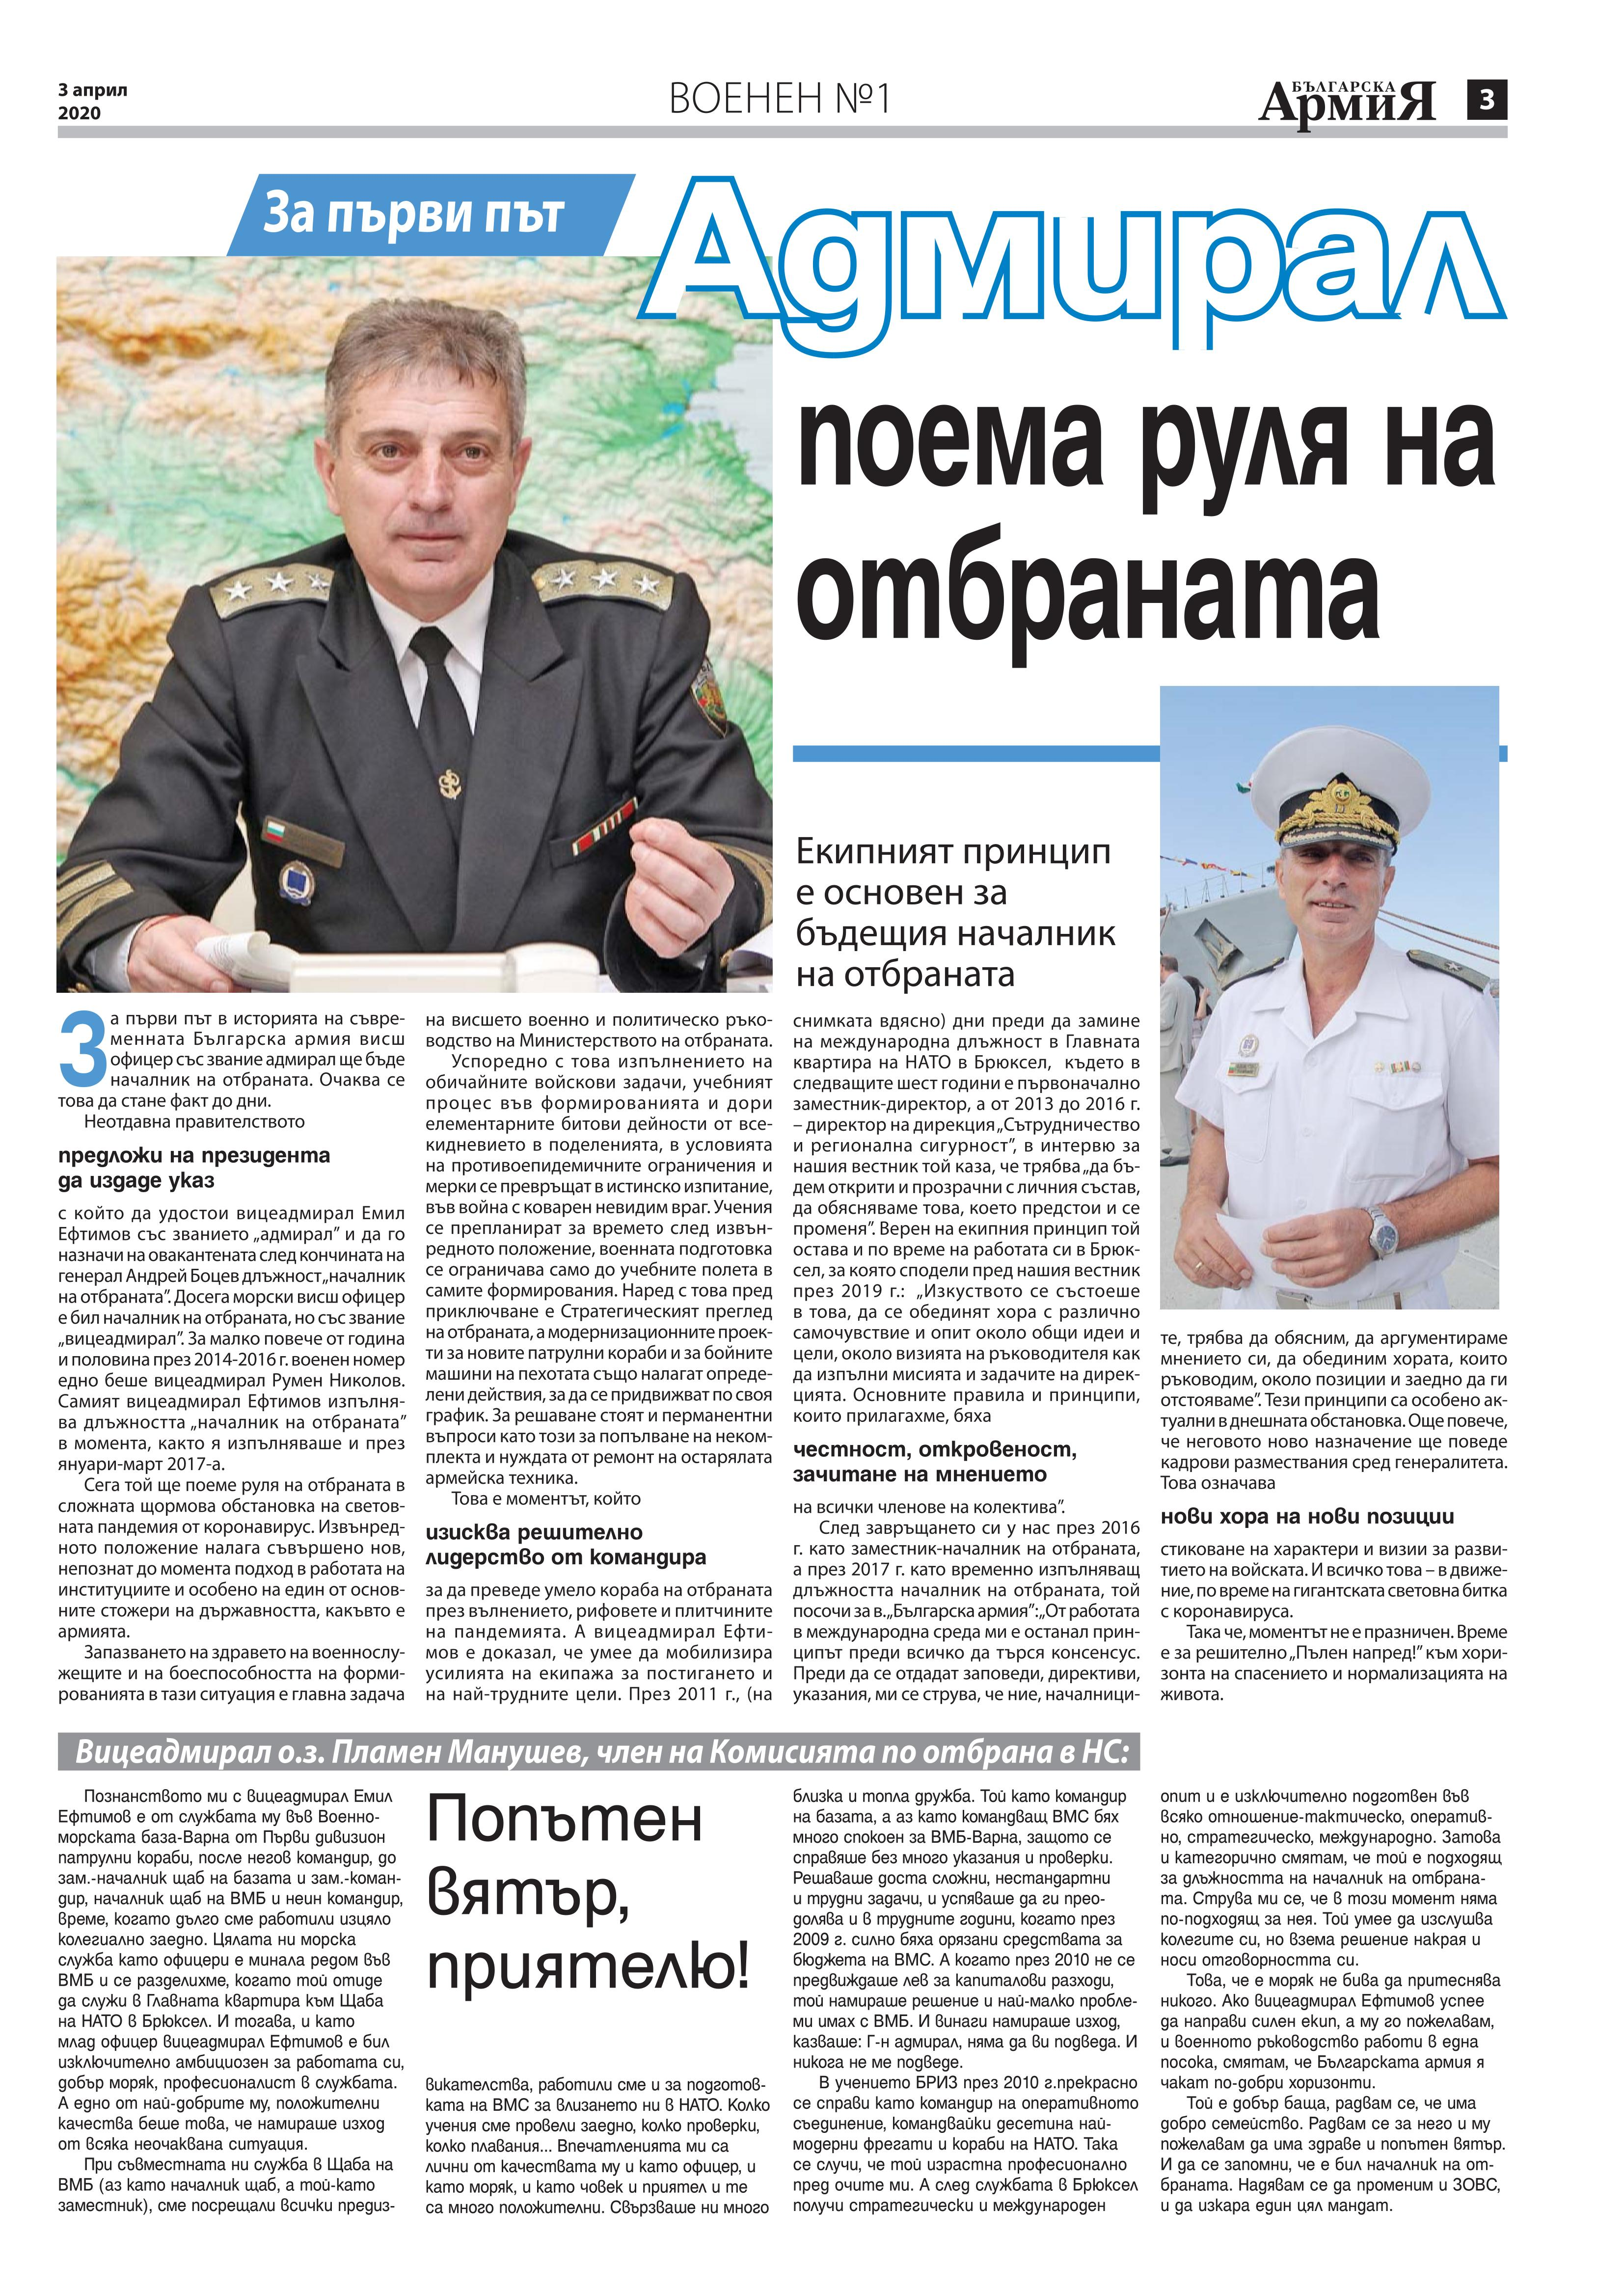 https://armymedia.bg/wp-content/uploads/2015/06/03.page1_-130.jpg